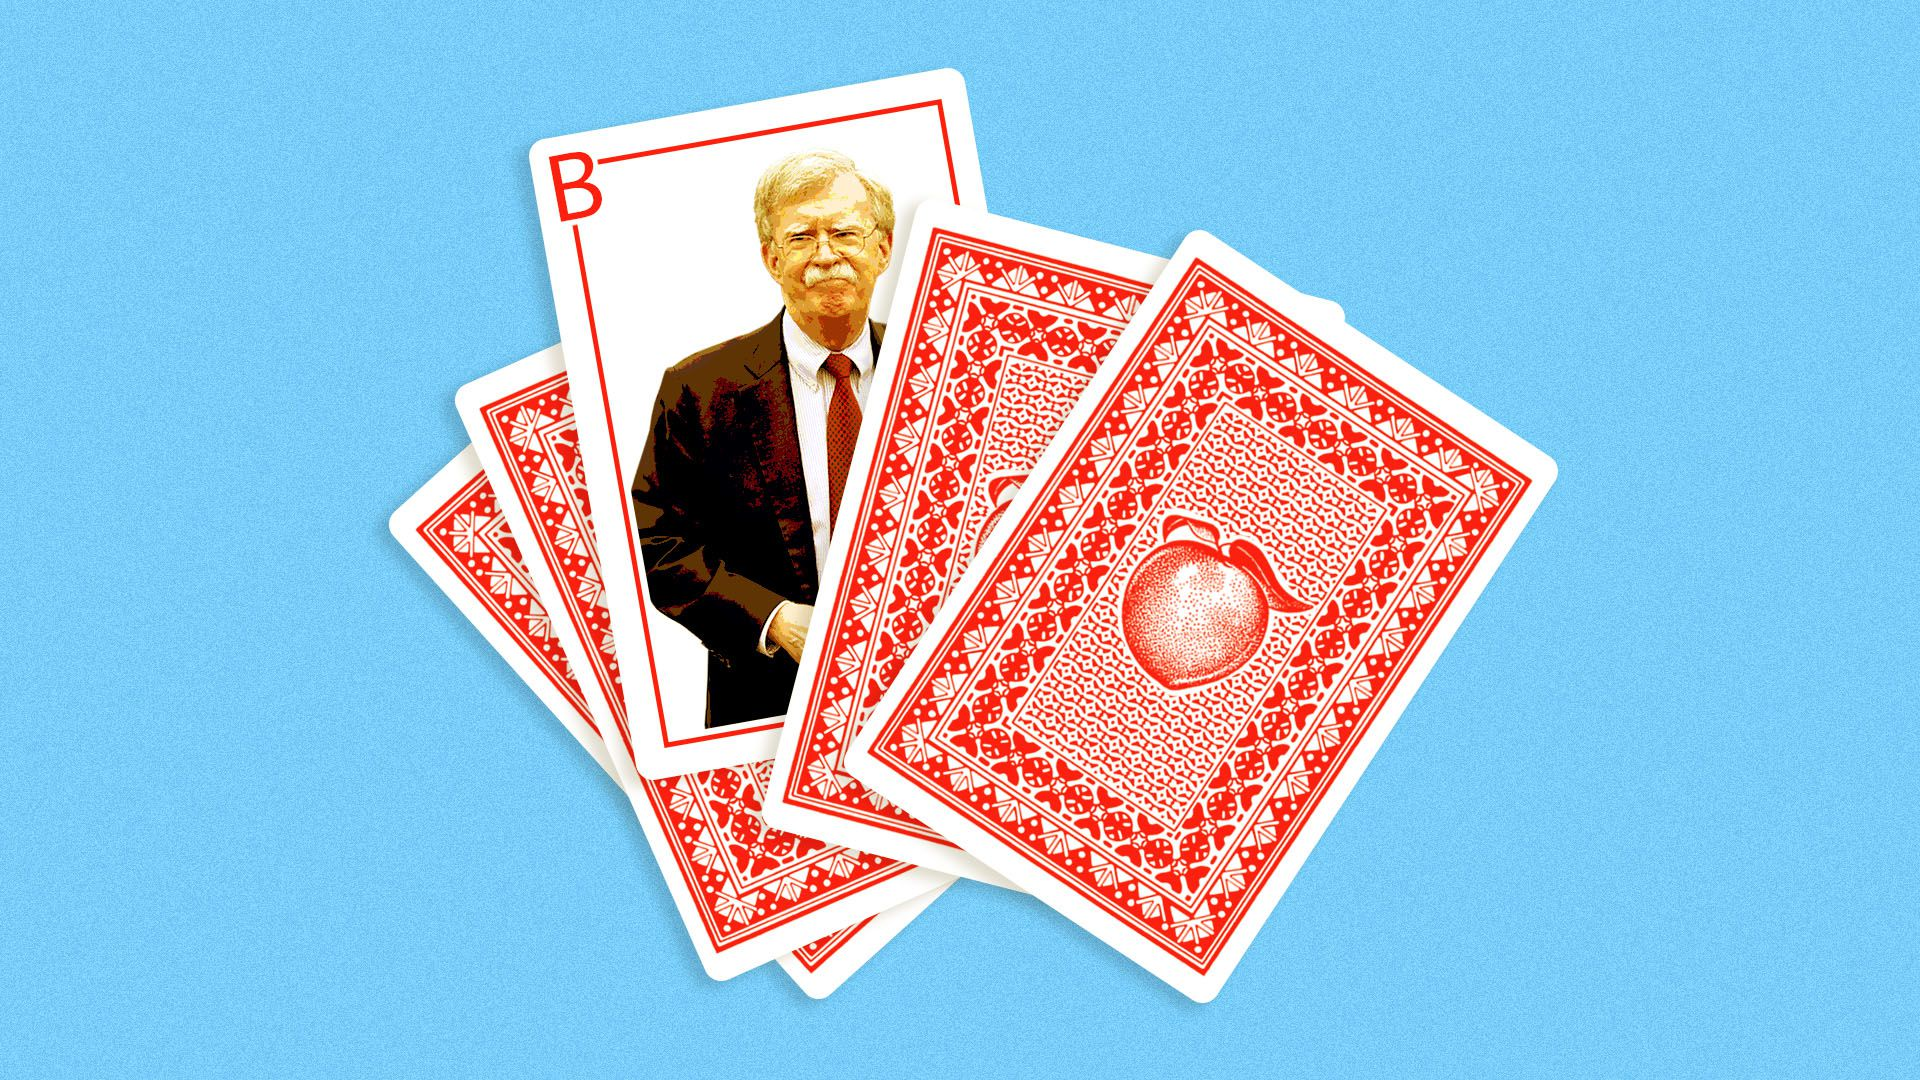 Illustration of a deck of playing cards with a peach design on them, with one turned over featuring John Bolton.